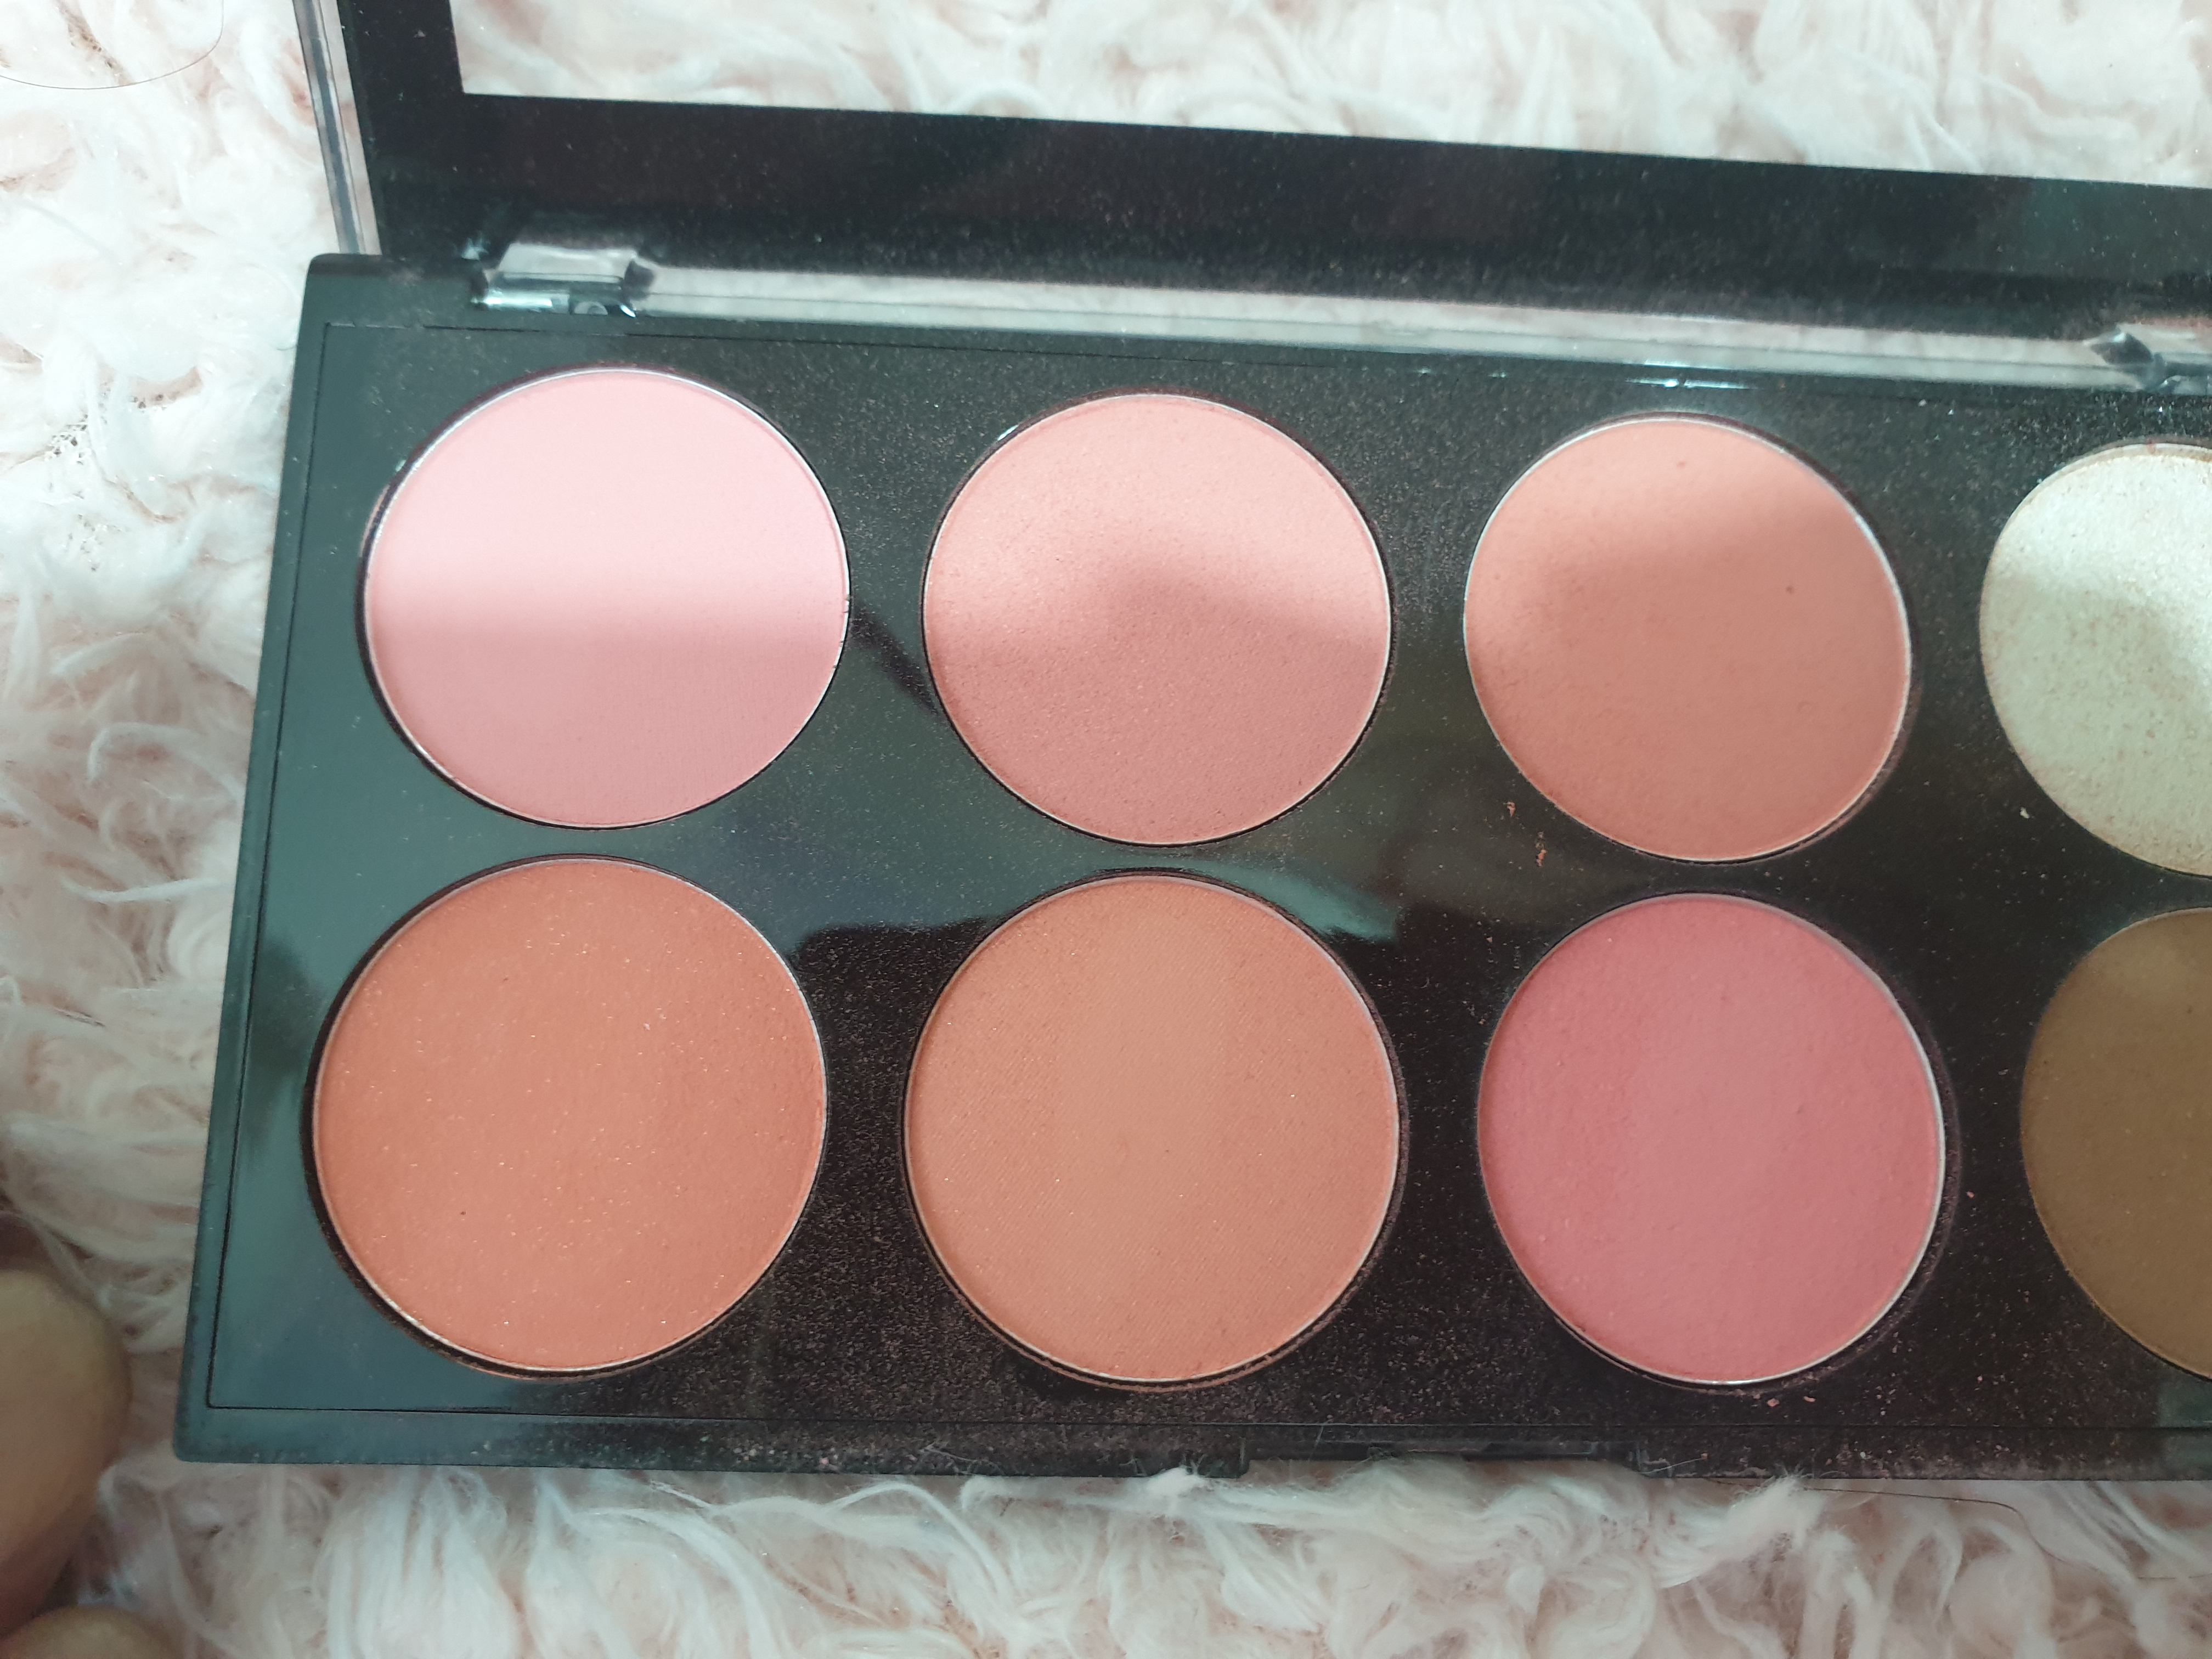 Sivanna Ultra Blush Palette pic 1-Perfect for Beginners-By vitika_singh